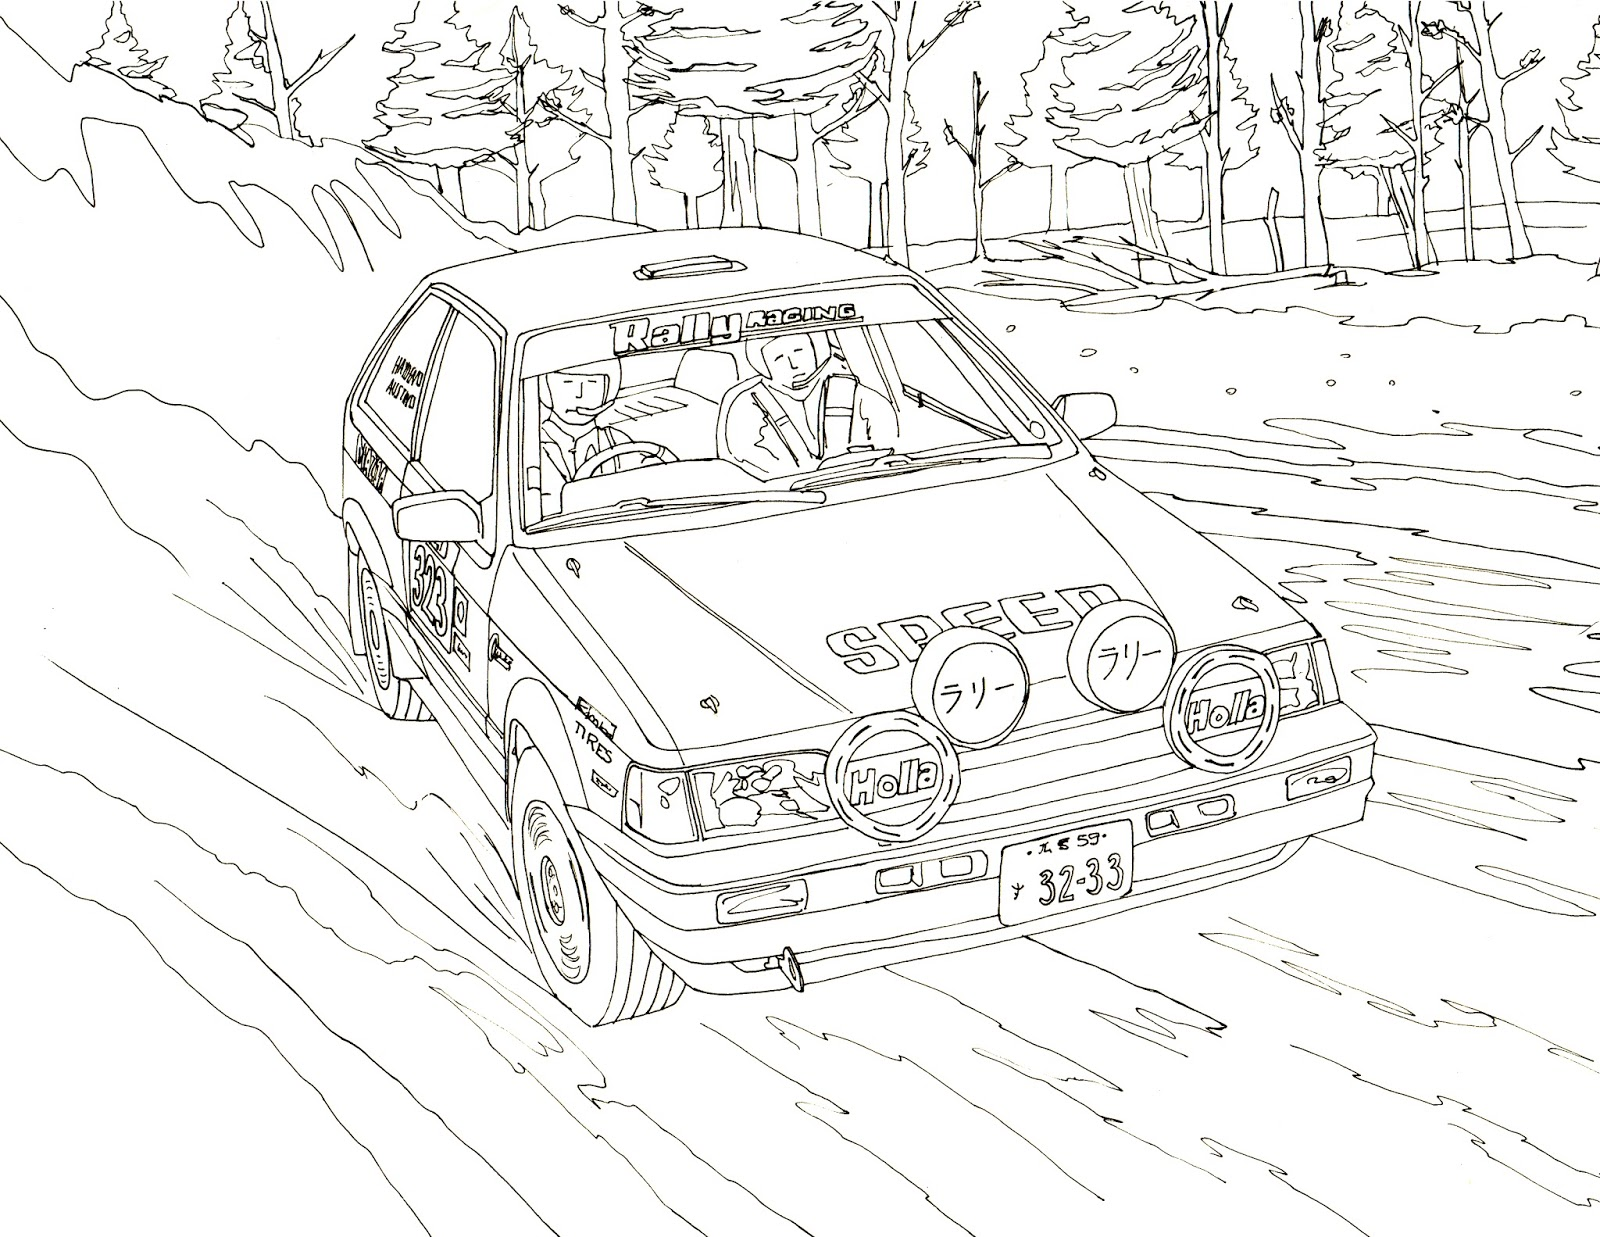 Enjoy As Well The All Wheel Drive Mazda 323 GTX Rally Car Print It Out And Color